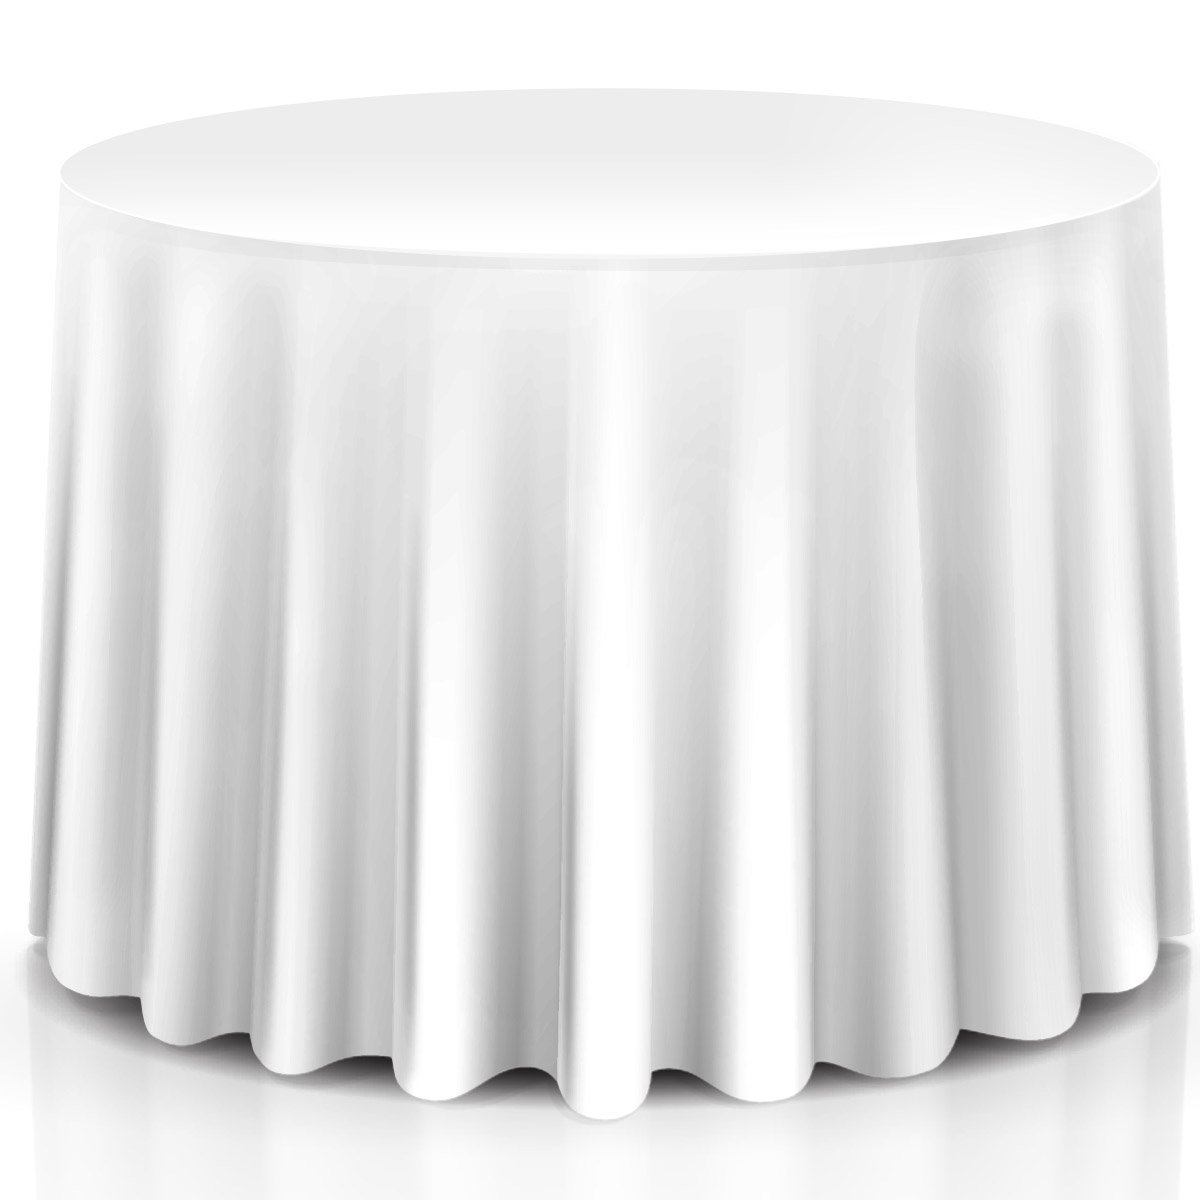 Giantex 120-Inch Round Polyester Tablecloth Table Cover for Wedding Restaurant Party Banquet Table Cover White, 10 Pcs